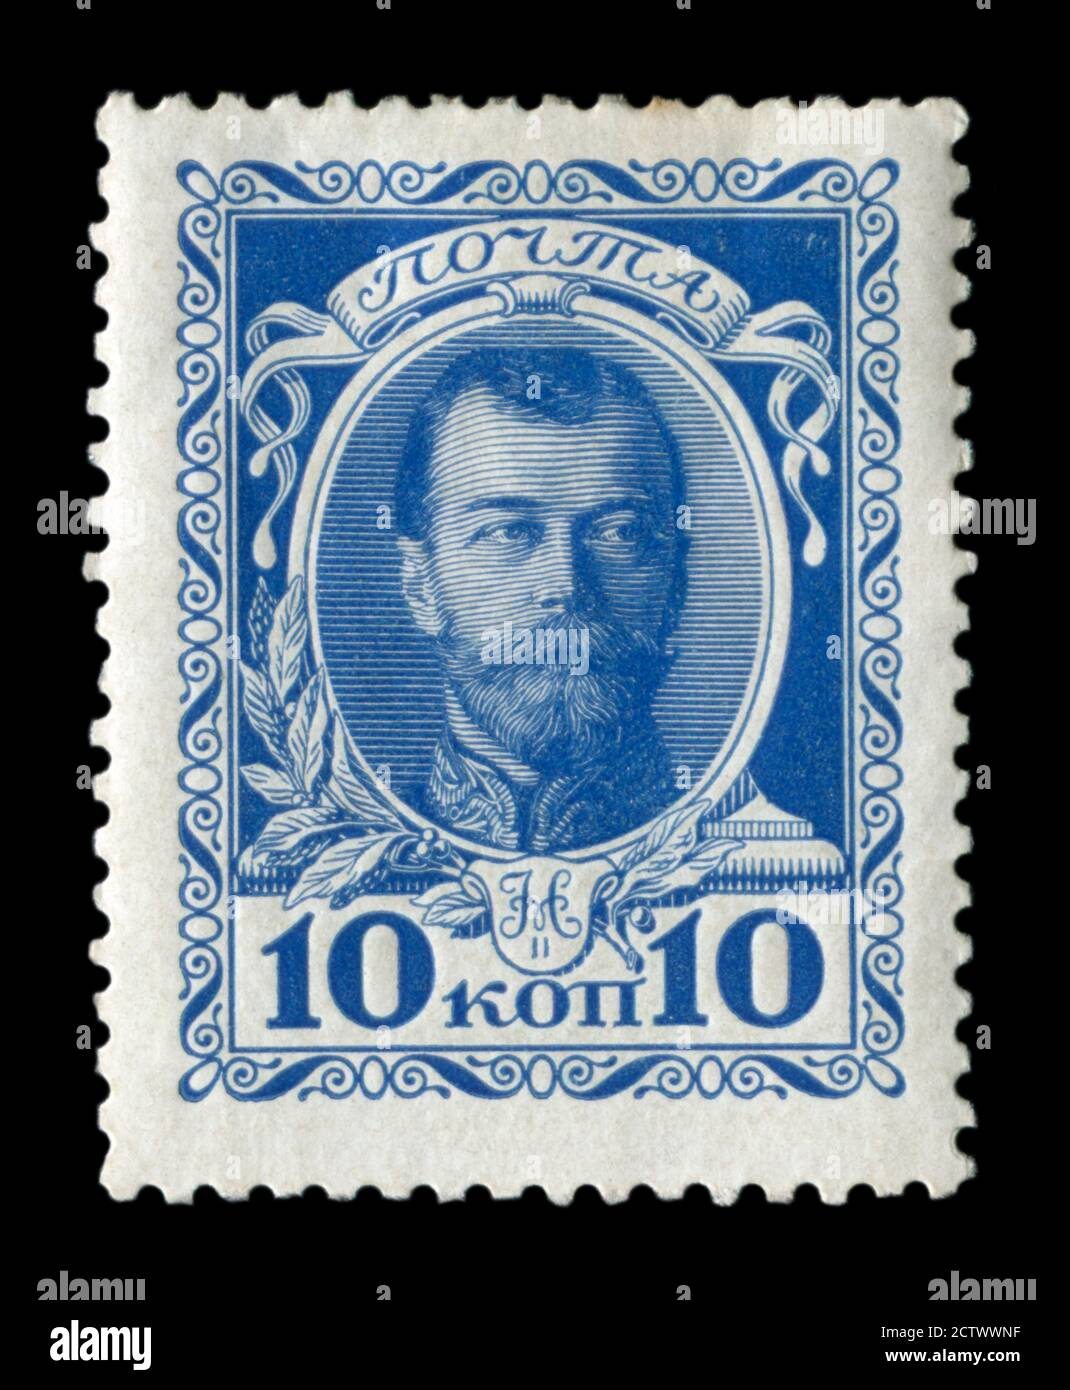 Russian historical postage stamp: 300th anniversary of the house of Romanov. Tsarist dynasty of the Russian Empire, emperor Nicholas II,1613-1913 Stock Photo